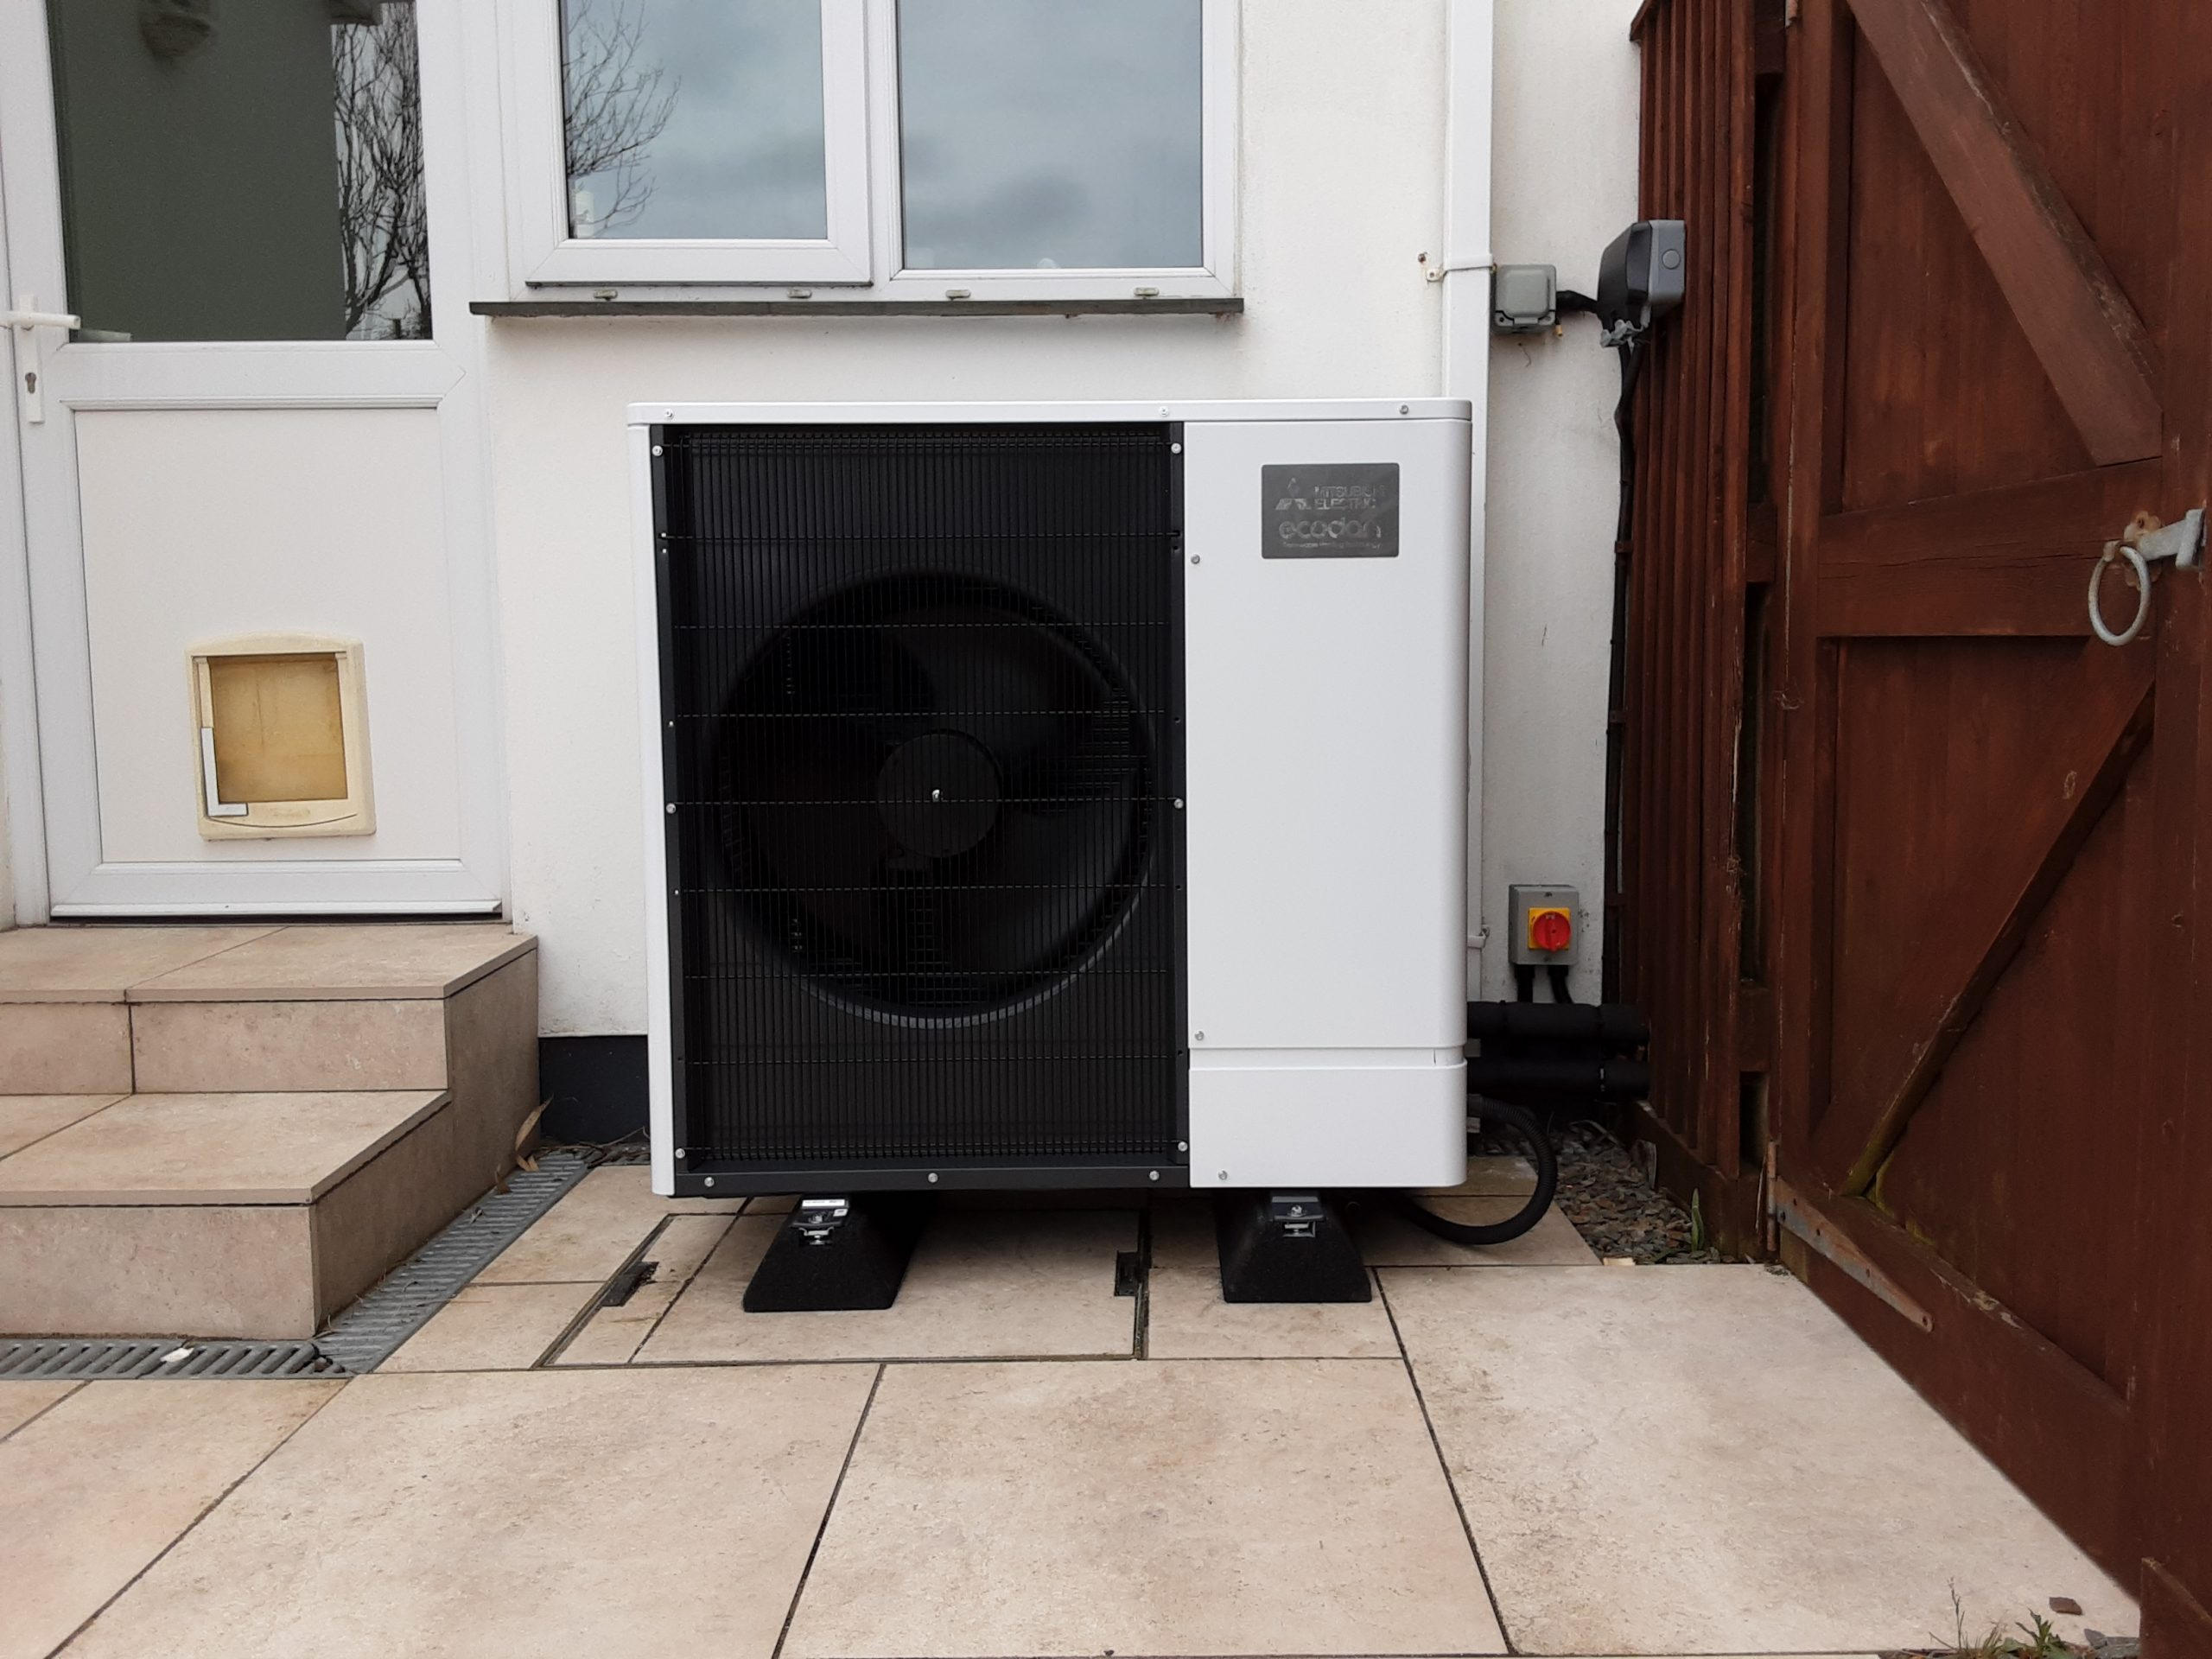 An 85kW Mitsubishi Ecodan ultra quiet air source heat pump installation by GreenGenUK in Cornwall.